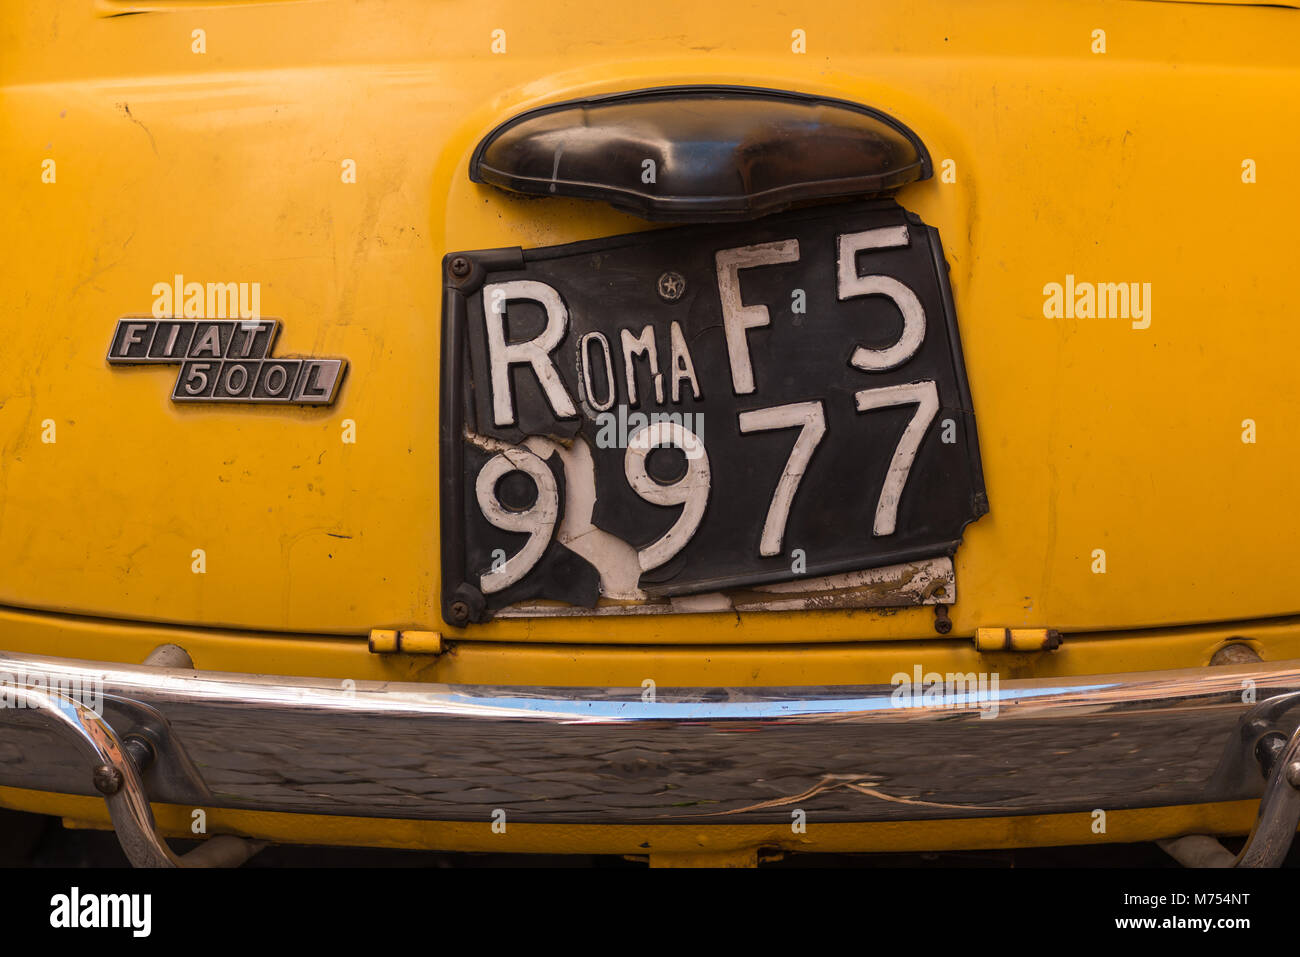 Classic Fiat 500 car with Roma plates, parked on Trastevere backstreet, Rome, Lazio, Italy. - Stock Image